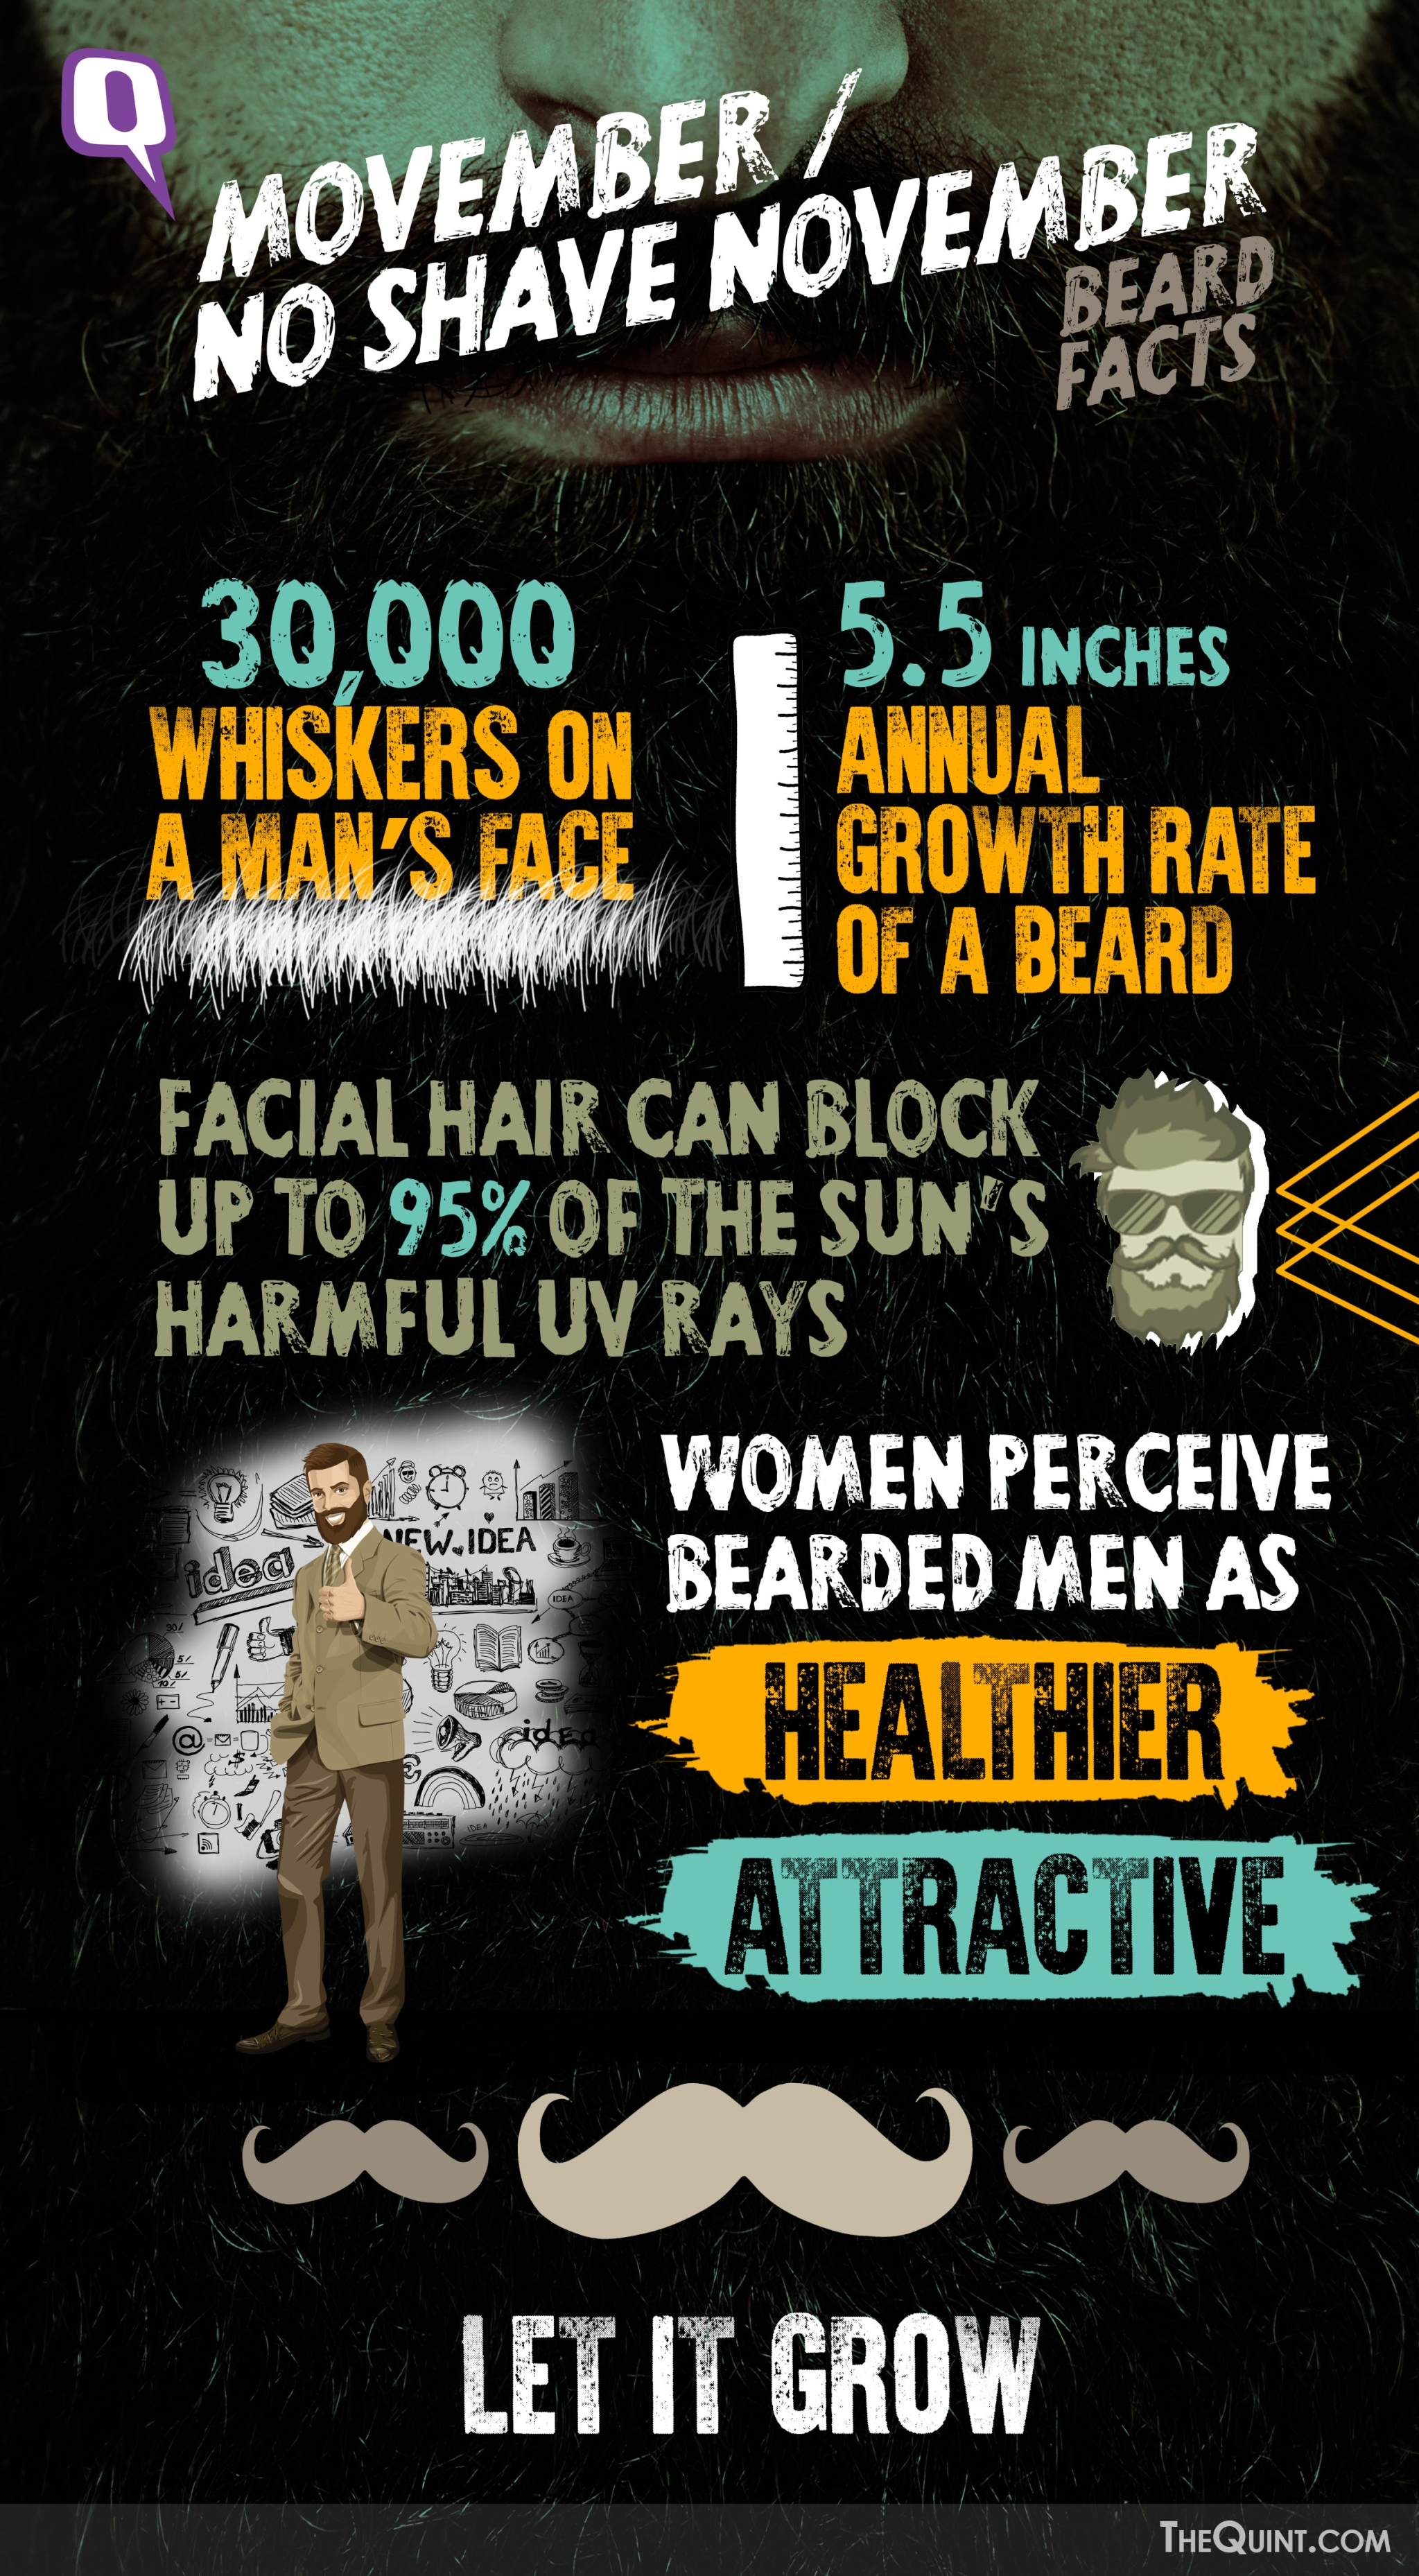 Late Fall Through Winter Is A Great Time For Man To Grow Beard The First Ning In November With No Shave Many Men Stop Shaving